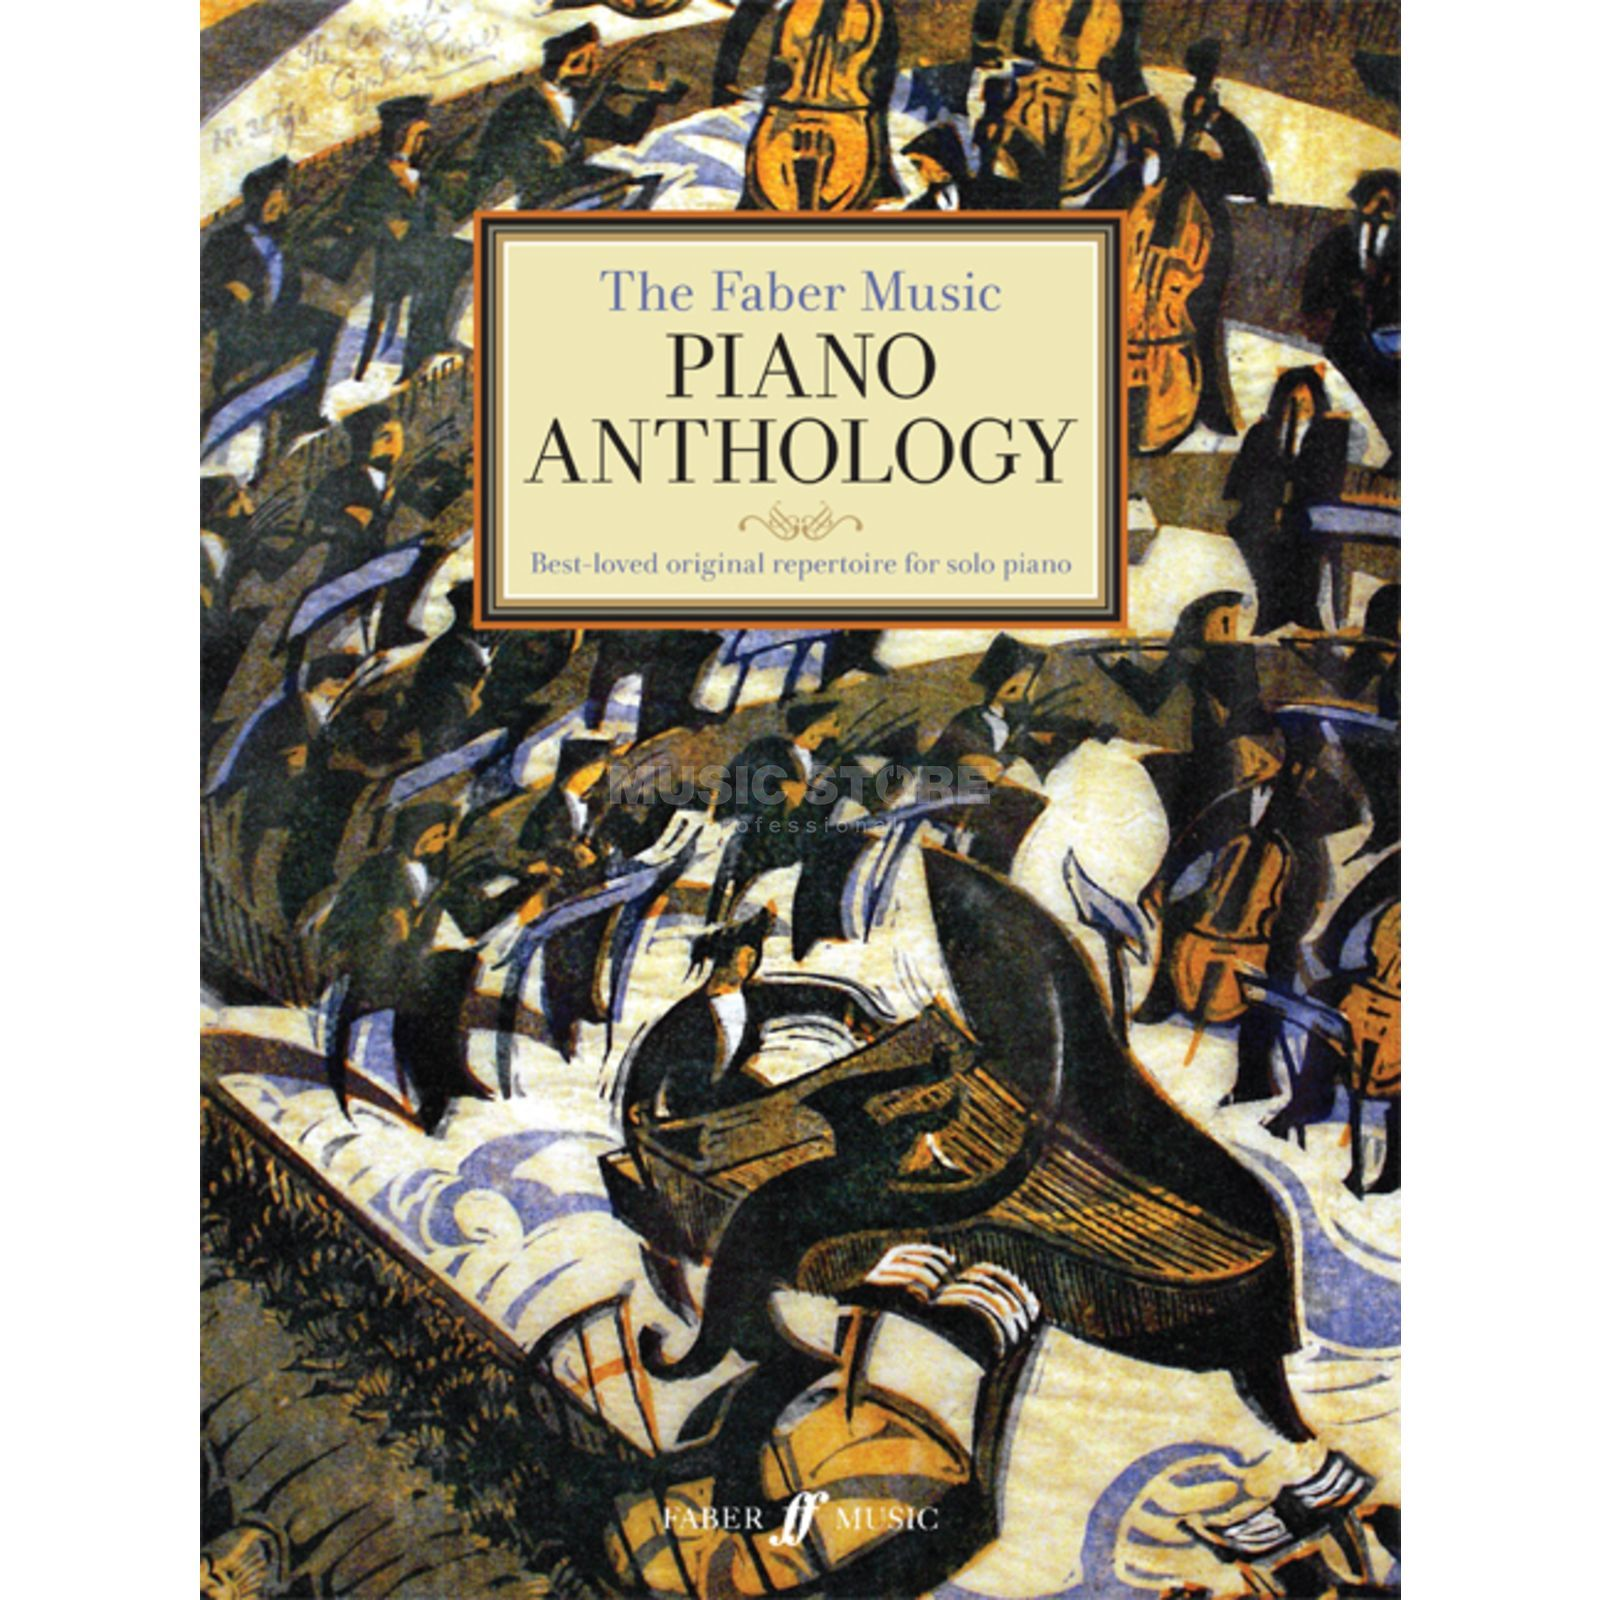 Faber Music The Faber Music Piano Anthology Produktbild